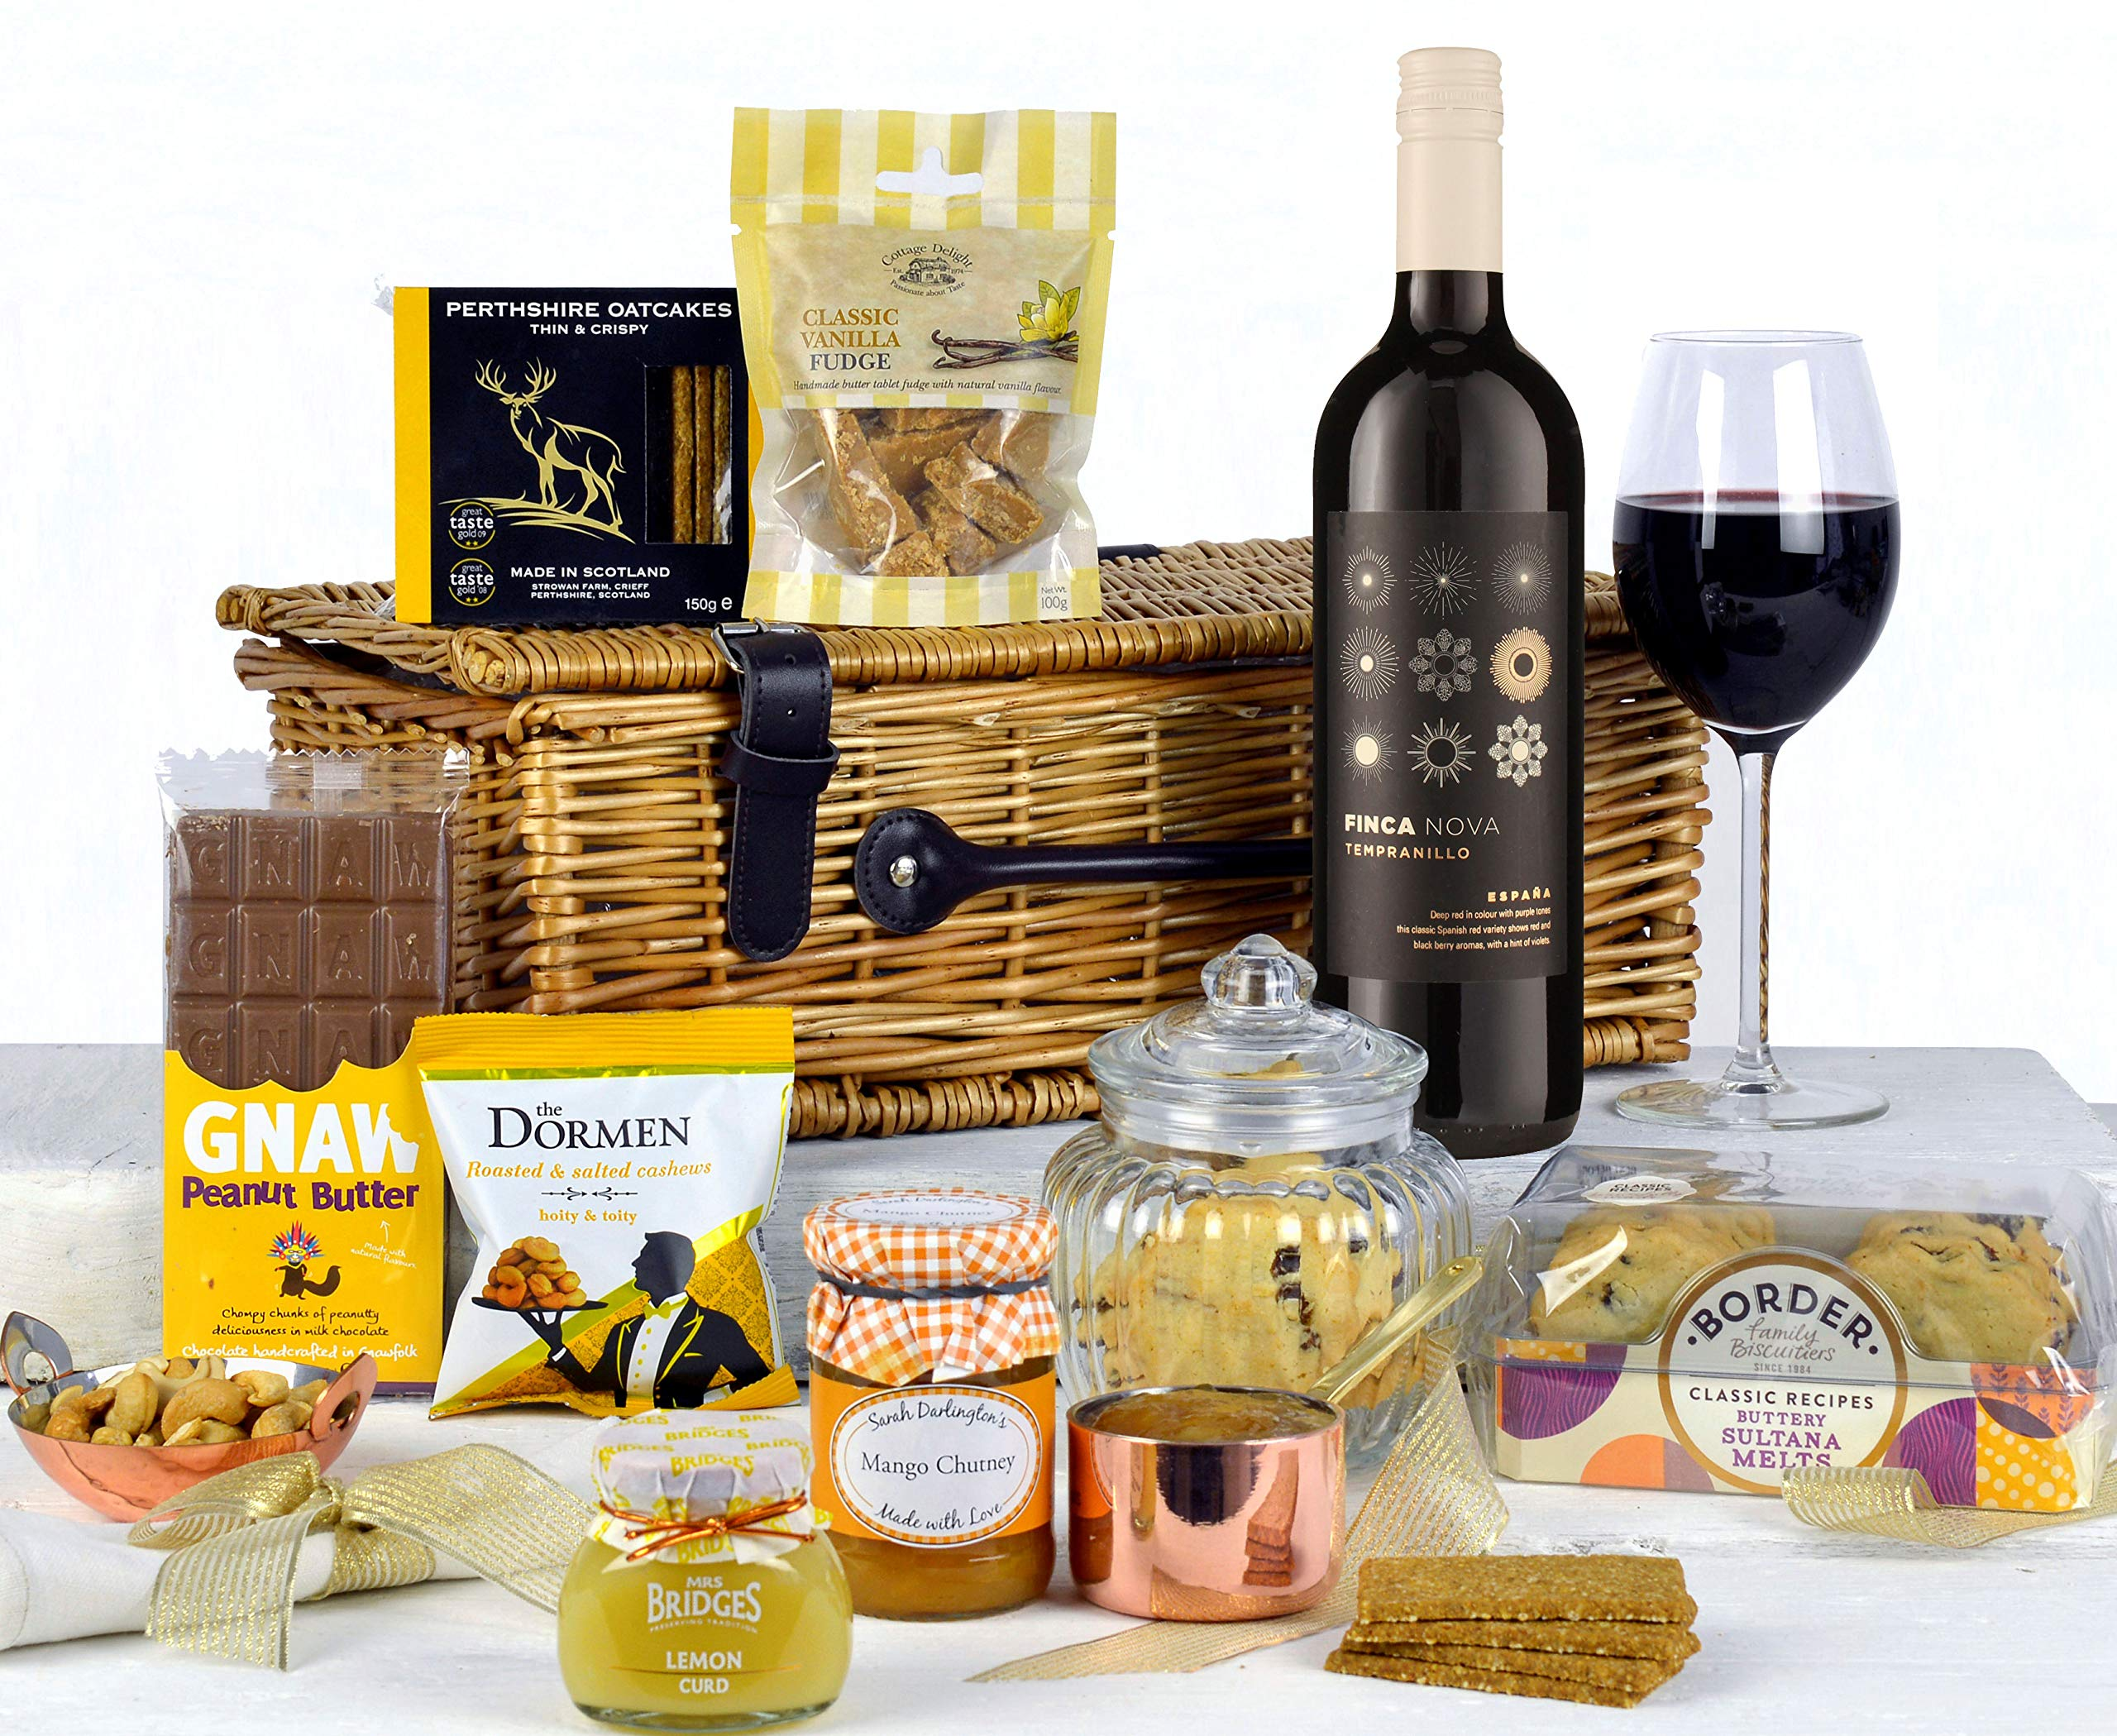 Traditional Food Hampers Any Occasion Gift Hamper With Red Wine Great Luxury For Birthdays Anniversaries Christmas